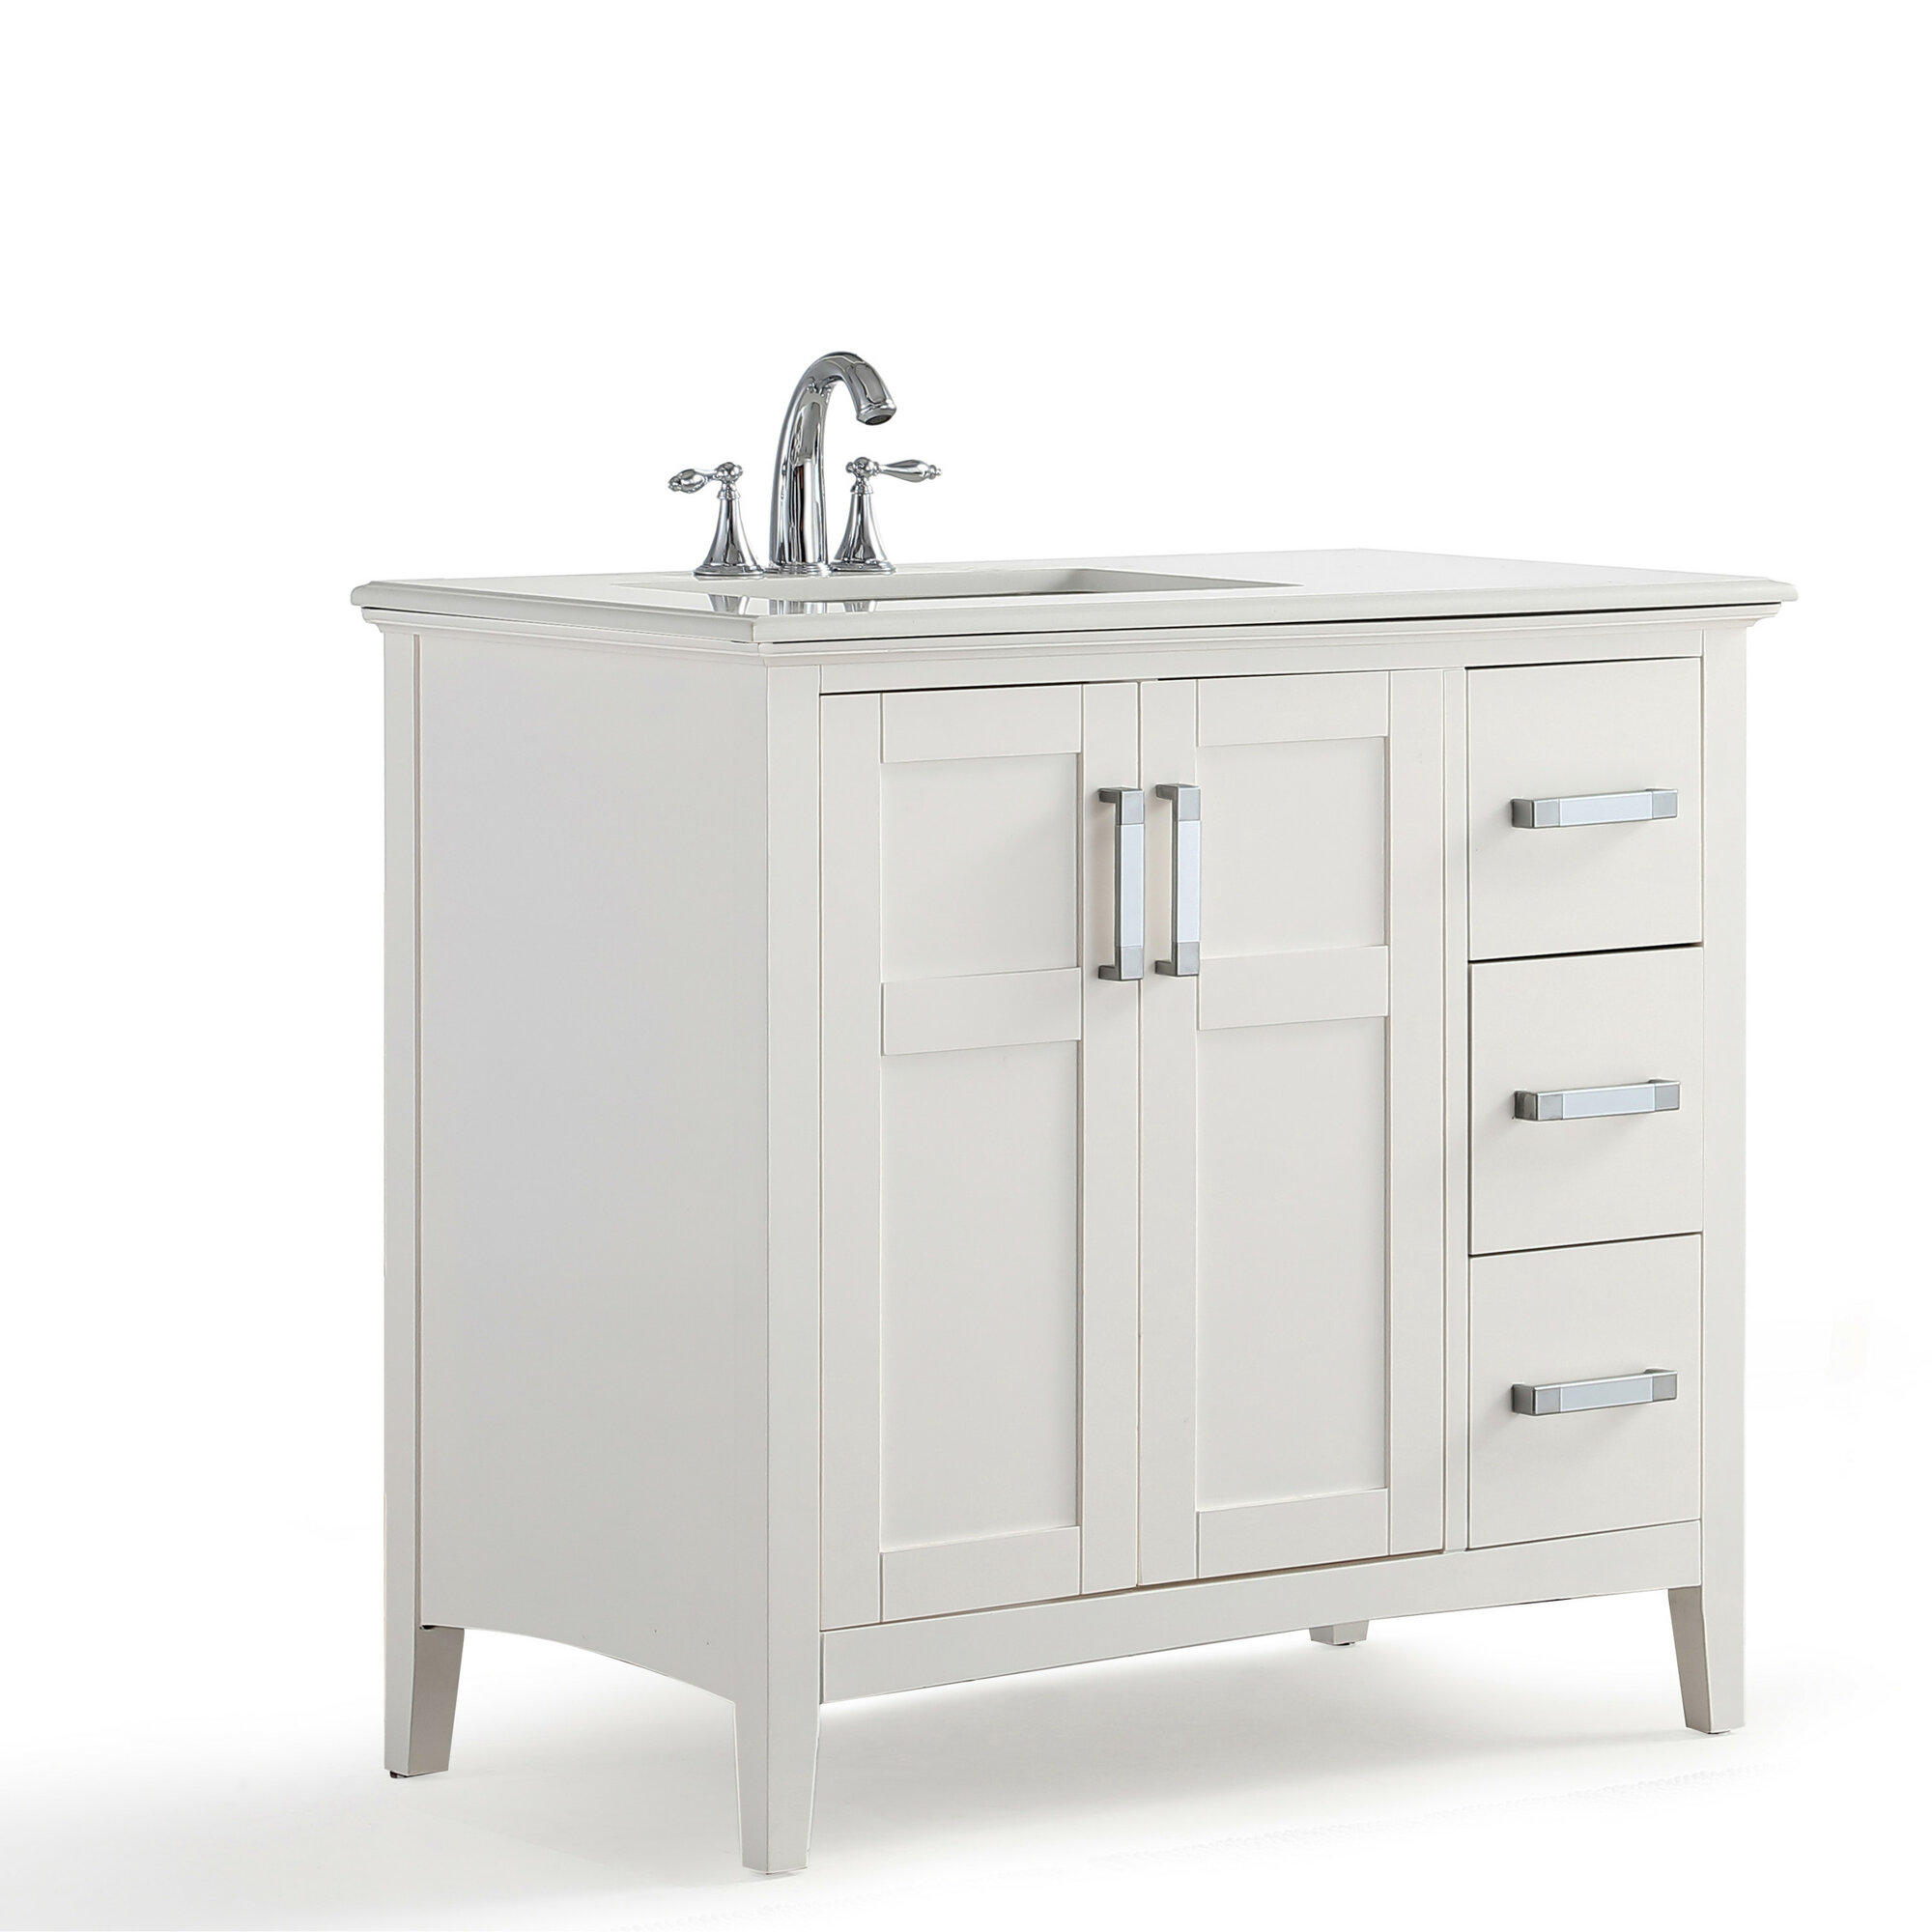 Winston Left Offset 37 Single Bathroom Vanity With Quartz Marble Top